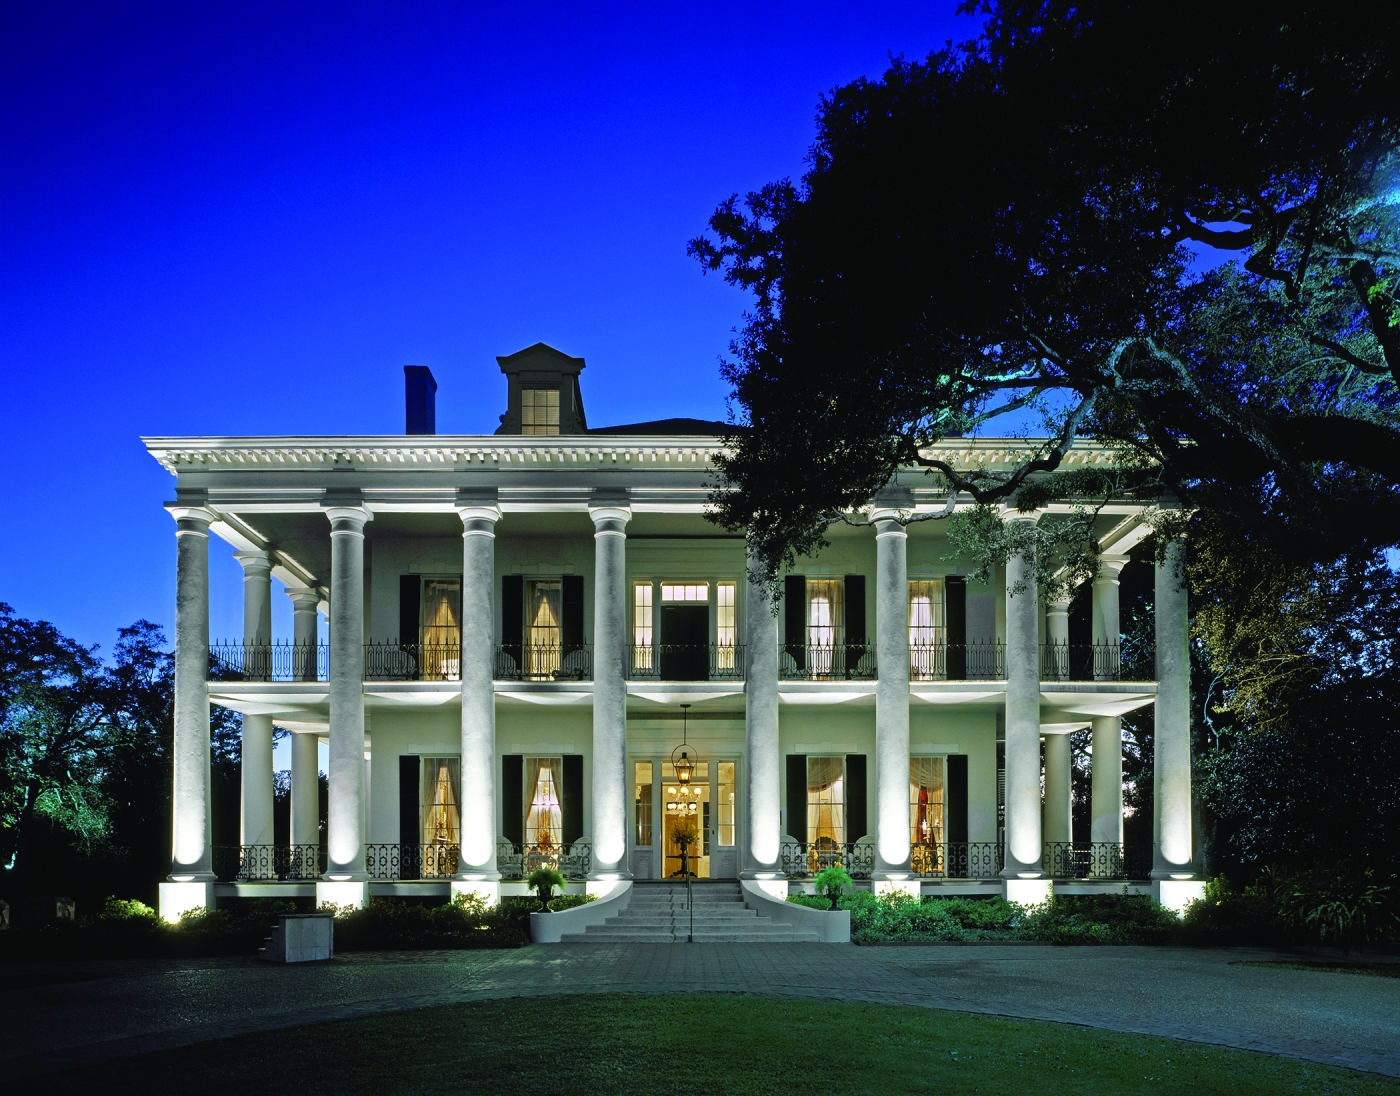 Dunleith Plantation was built in 1856 and is rich with history and charm; a great place to visit and even spend the night.